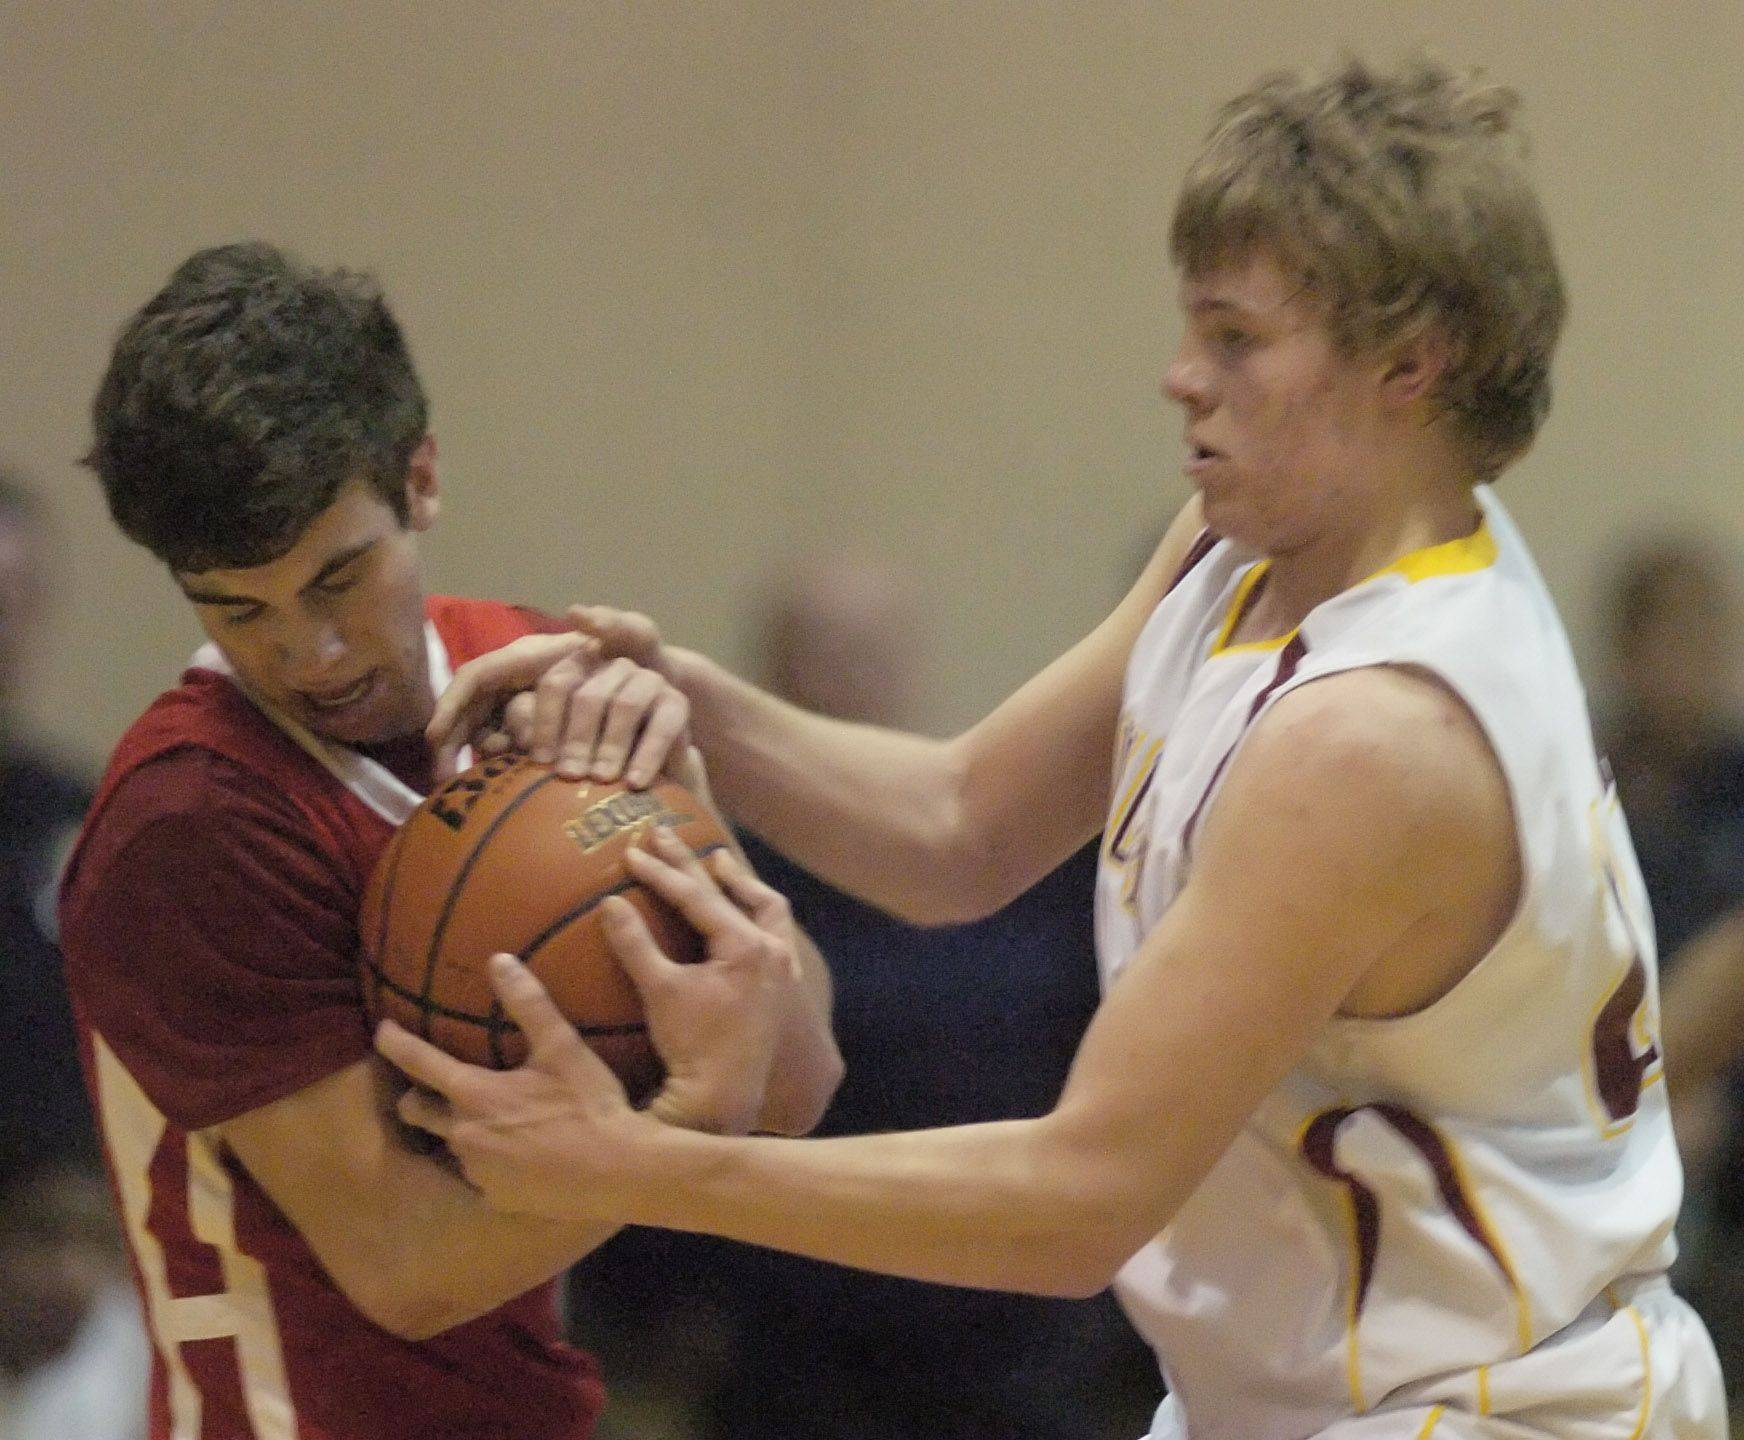 Schaumburg's Kyle Bolger, right, tries to grab the ball from Niles West's Nathan Sagett during Wednesday's sectional semifinal at New Trier.